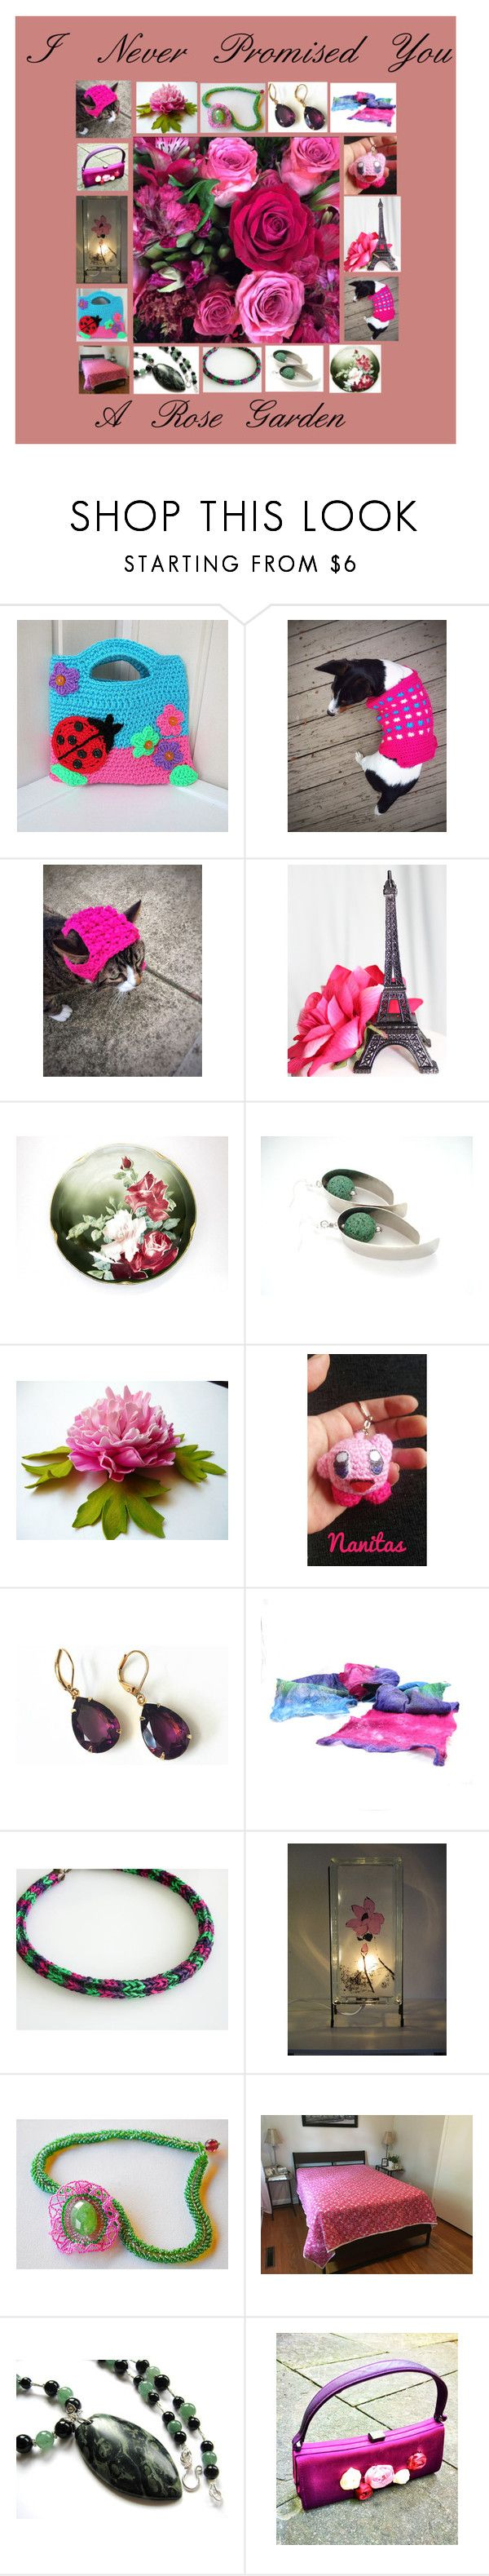 Rose Garden: Handmade & Vintage Gift Ideas by paulinemcewen on Polyvore featuring Nintendo and vintage